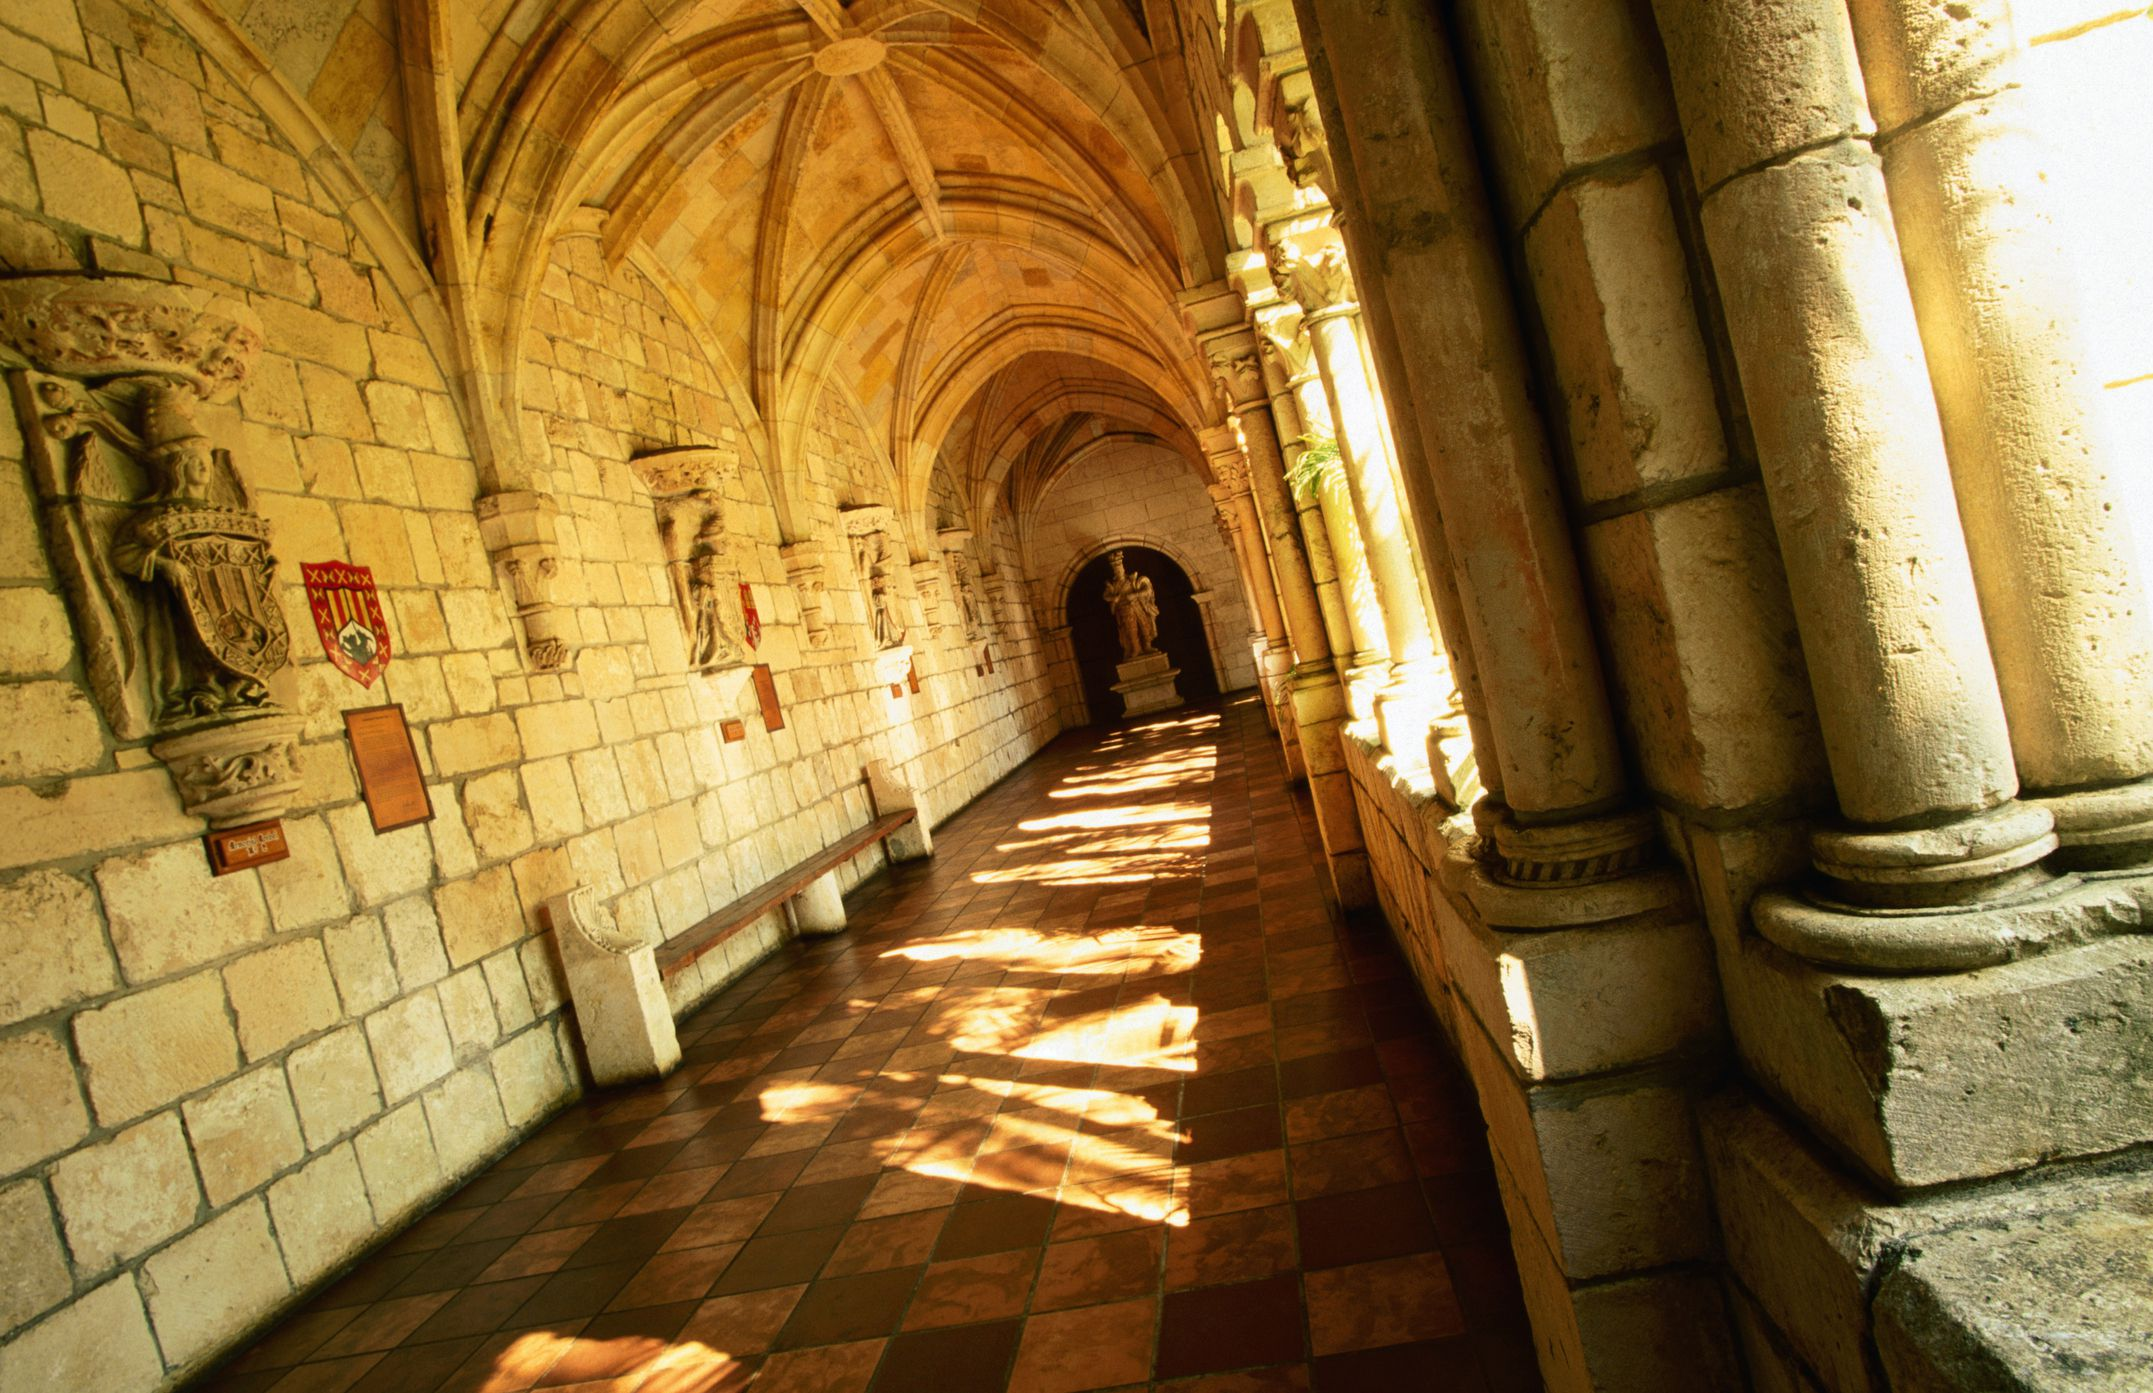 Cruises From Miami >> Visitor's Guide to the Ancient Spanish Monastery in North Miami Beach